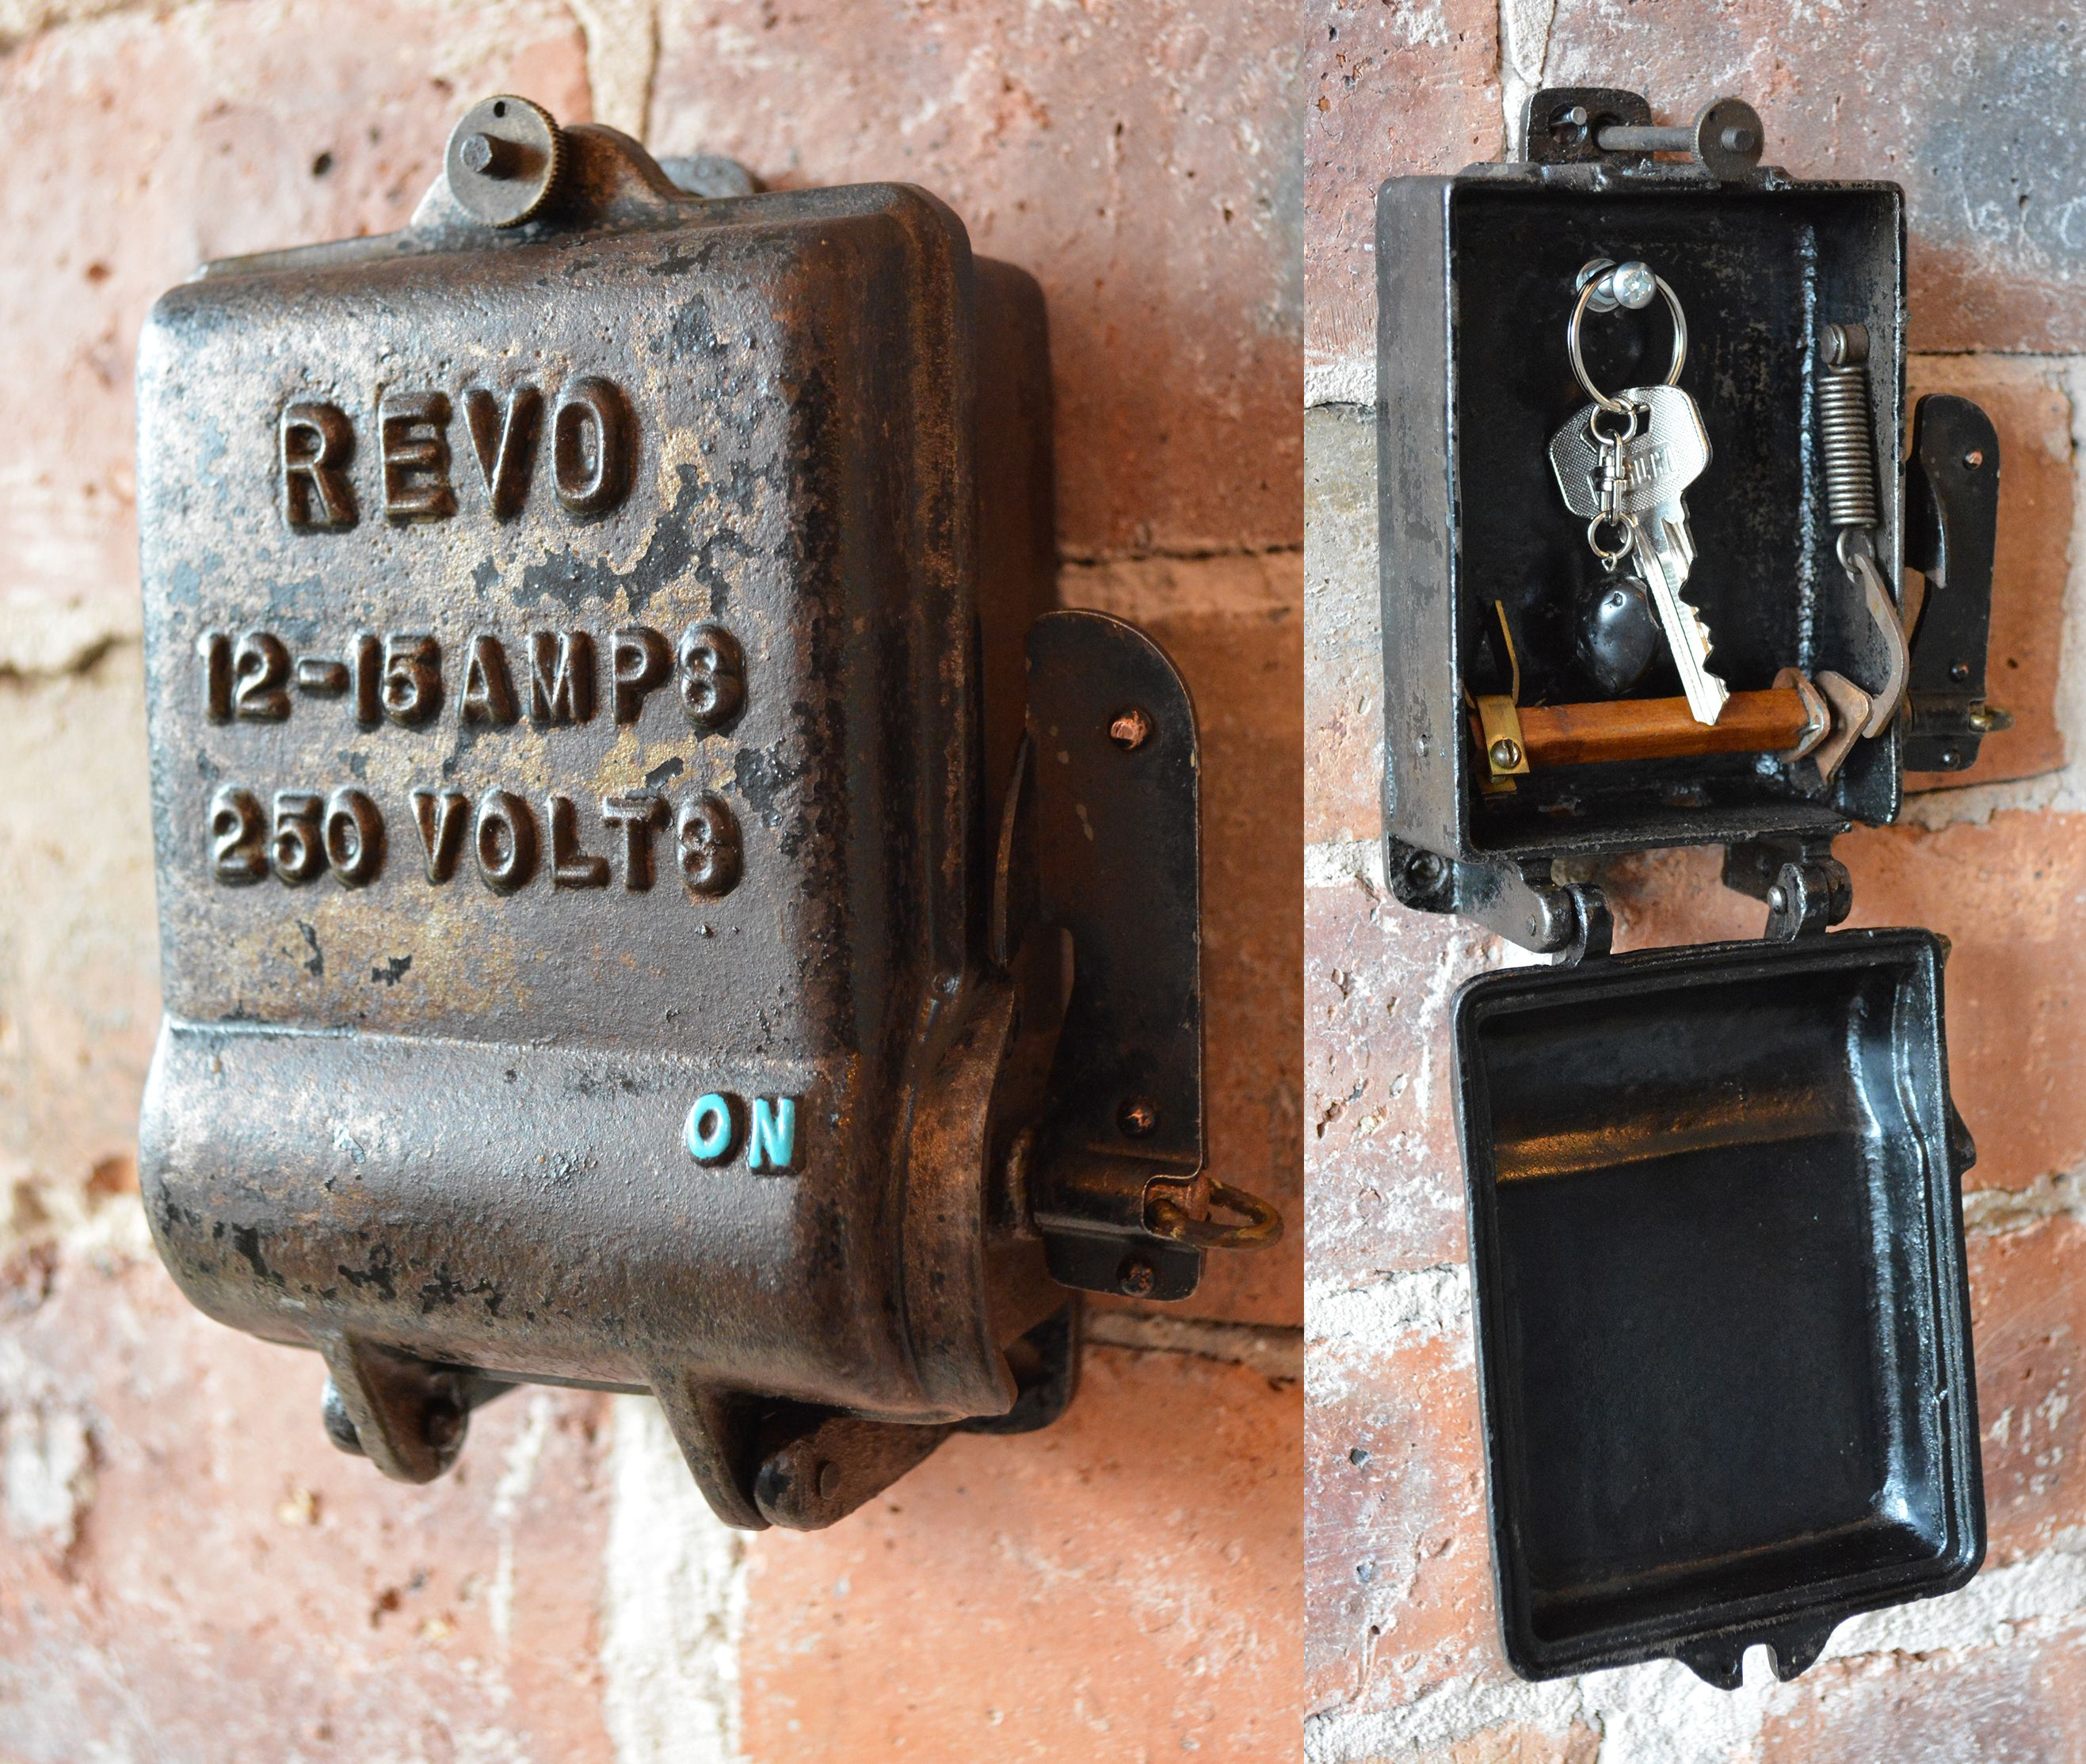 ddebd9ff65210514eb0d60b0b47283cd cast iron key storage converted from an antique 1940's memset Old Fuse Box Parts at n-0.co